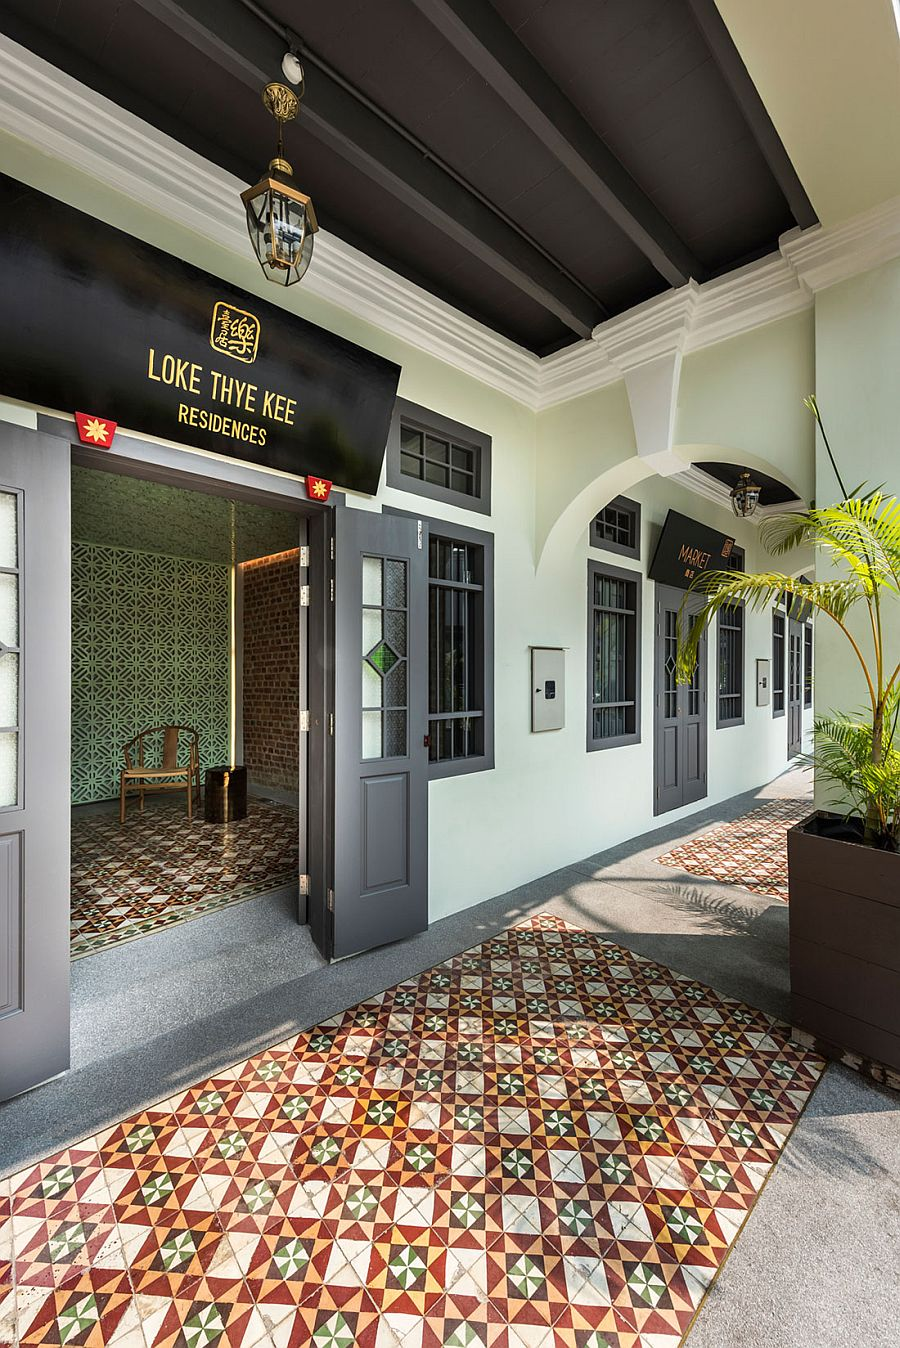 Loke Thye Kee Residences in Malaysia combines heritage with modern amenities